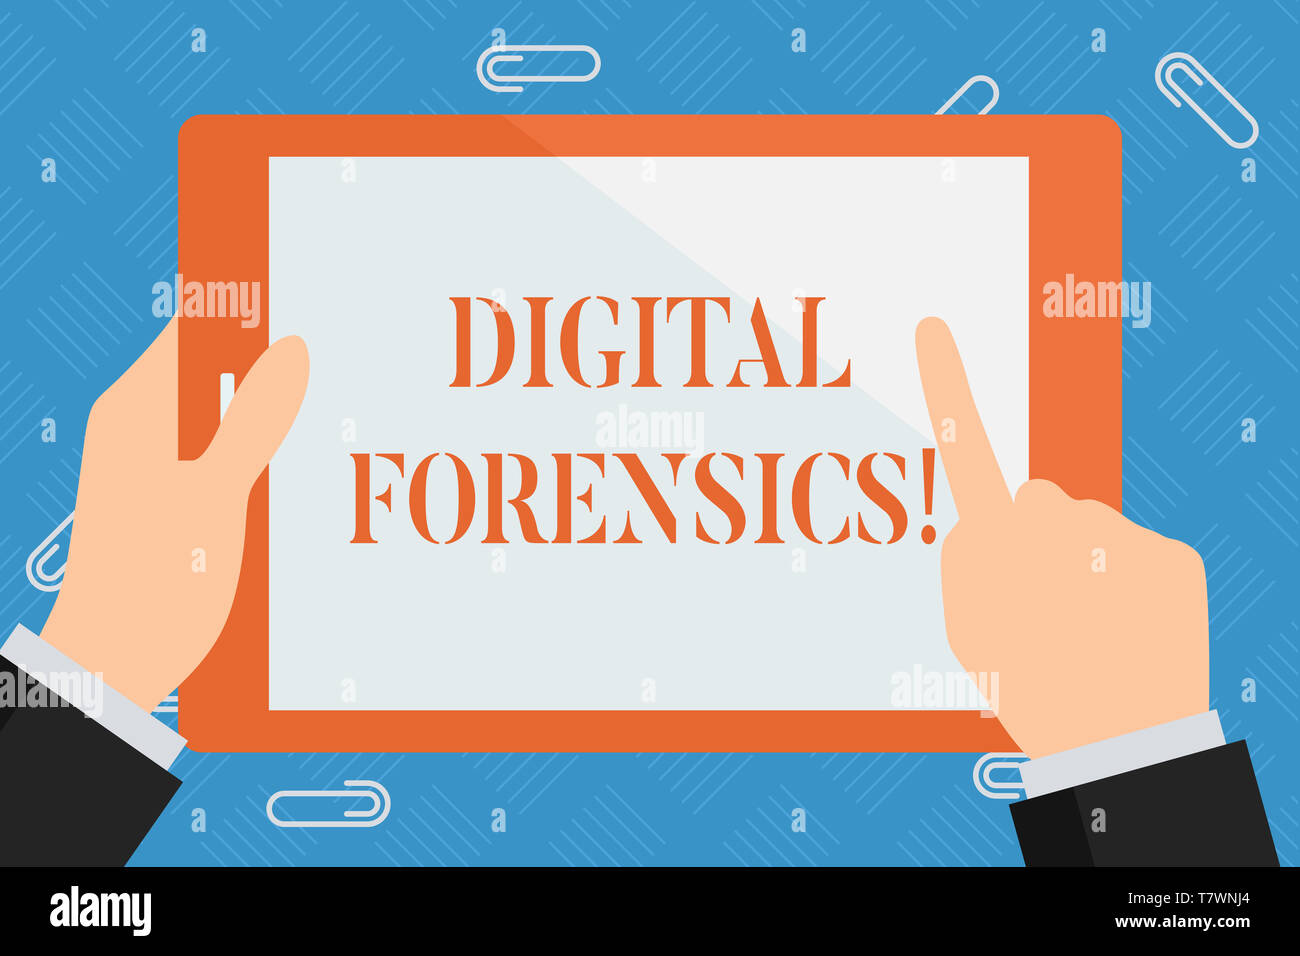 Conceptual hand writing showing Digital Forensics. Concept meaning investigation of material found in digital devices Hand Holding Pointing Touching C - Stock Image